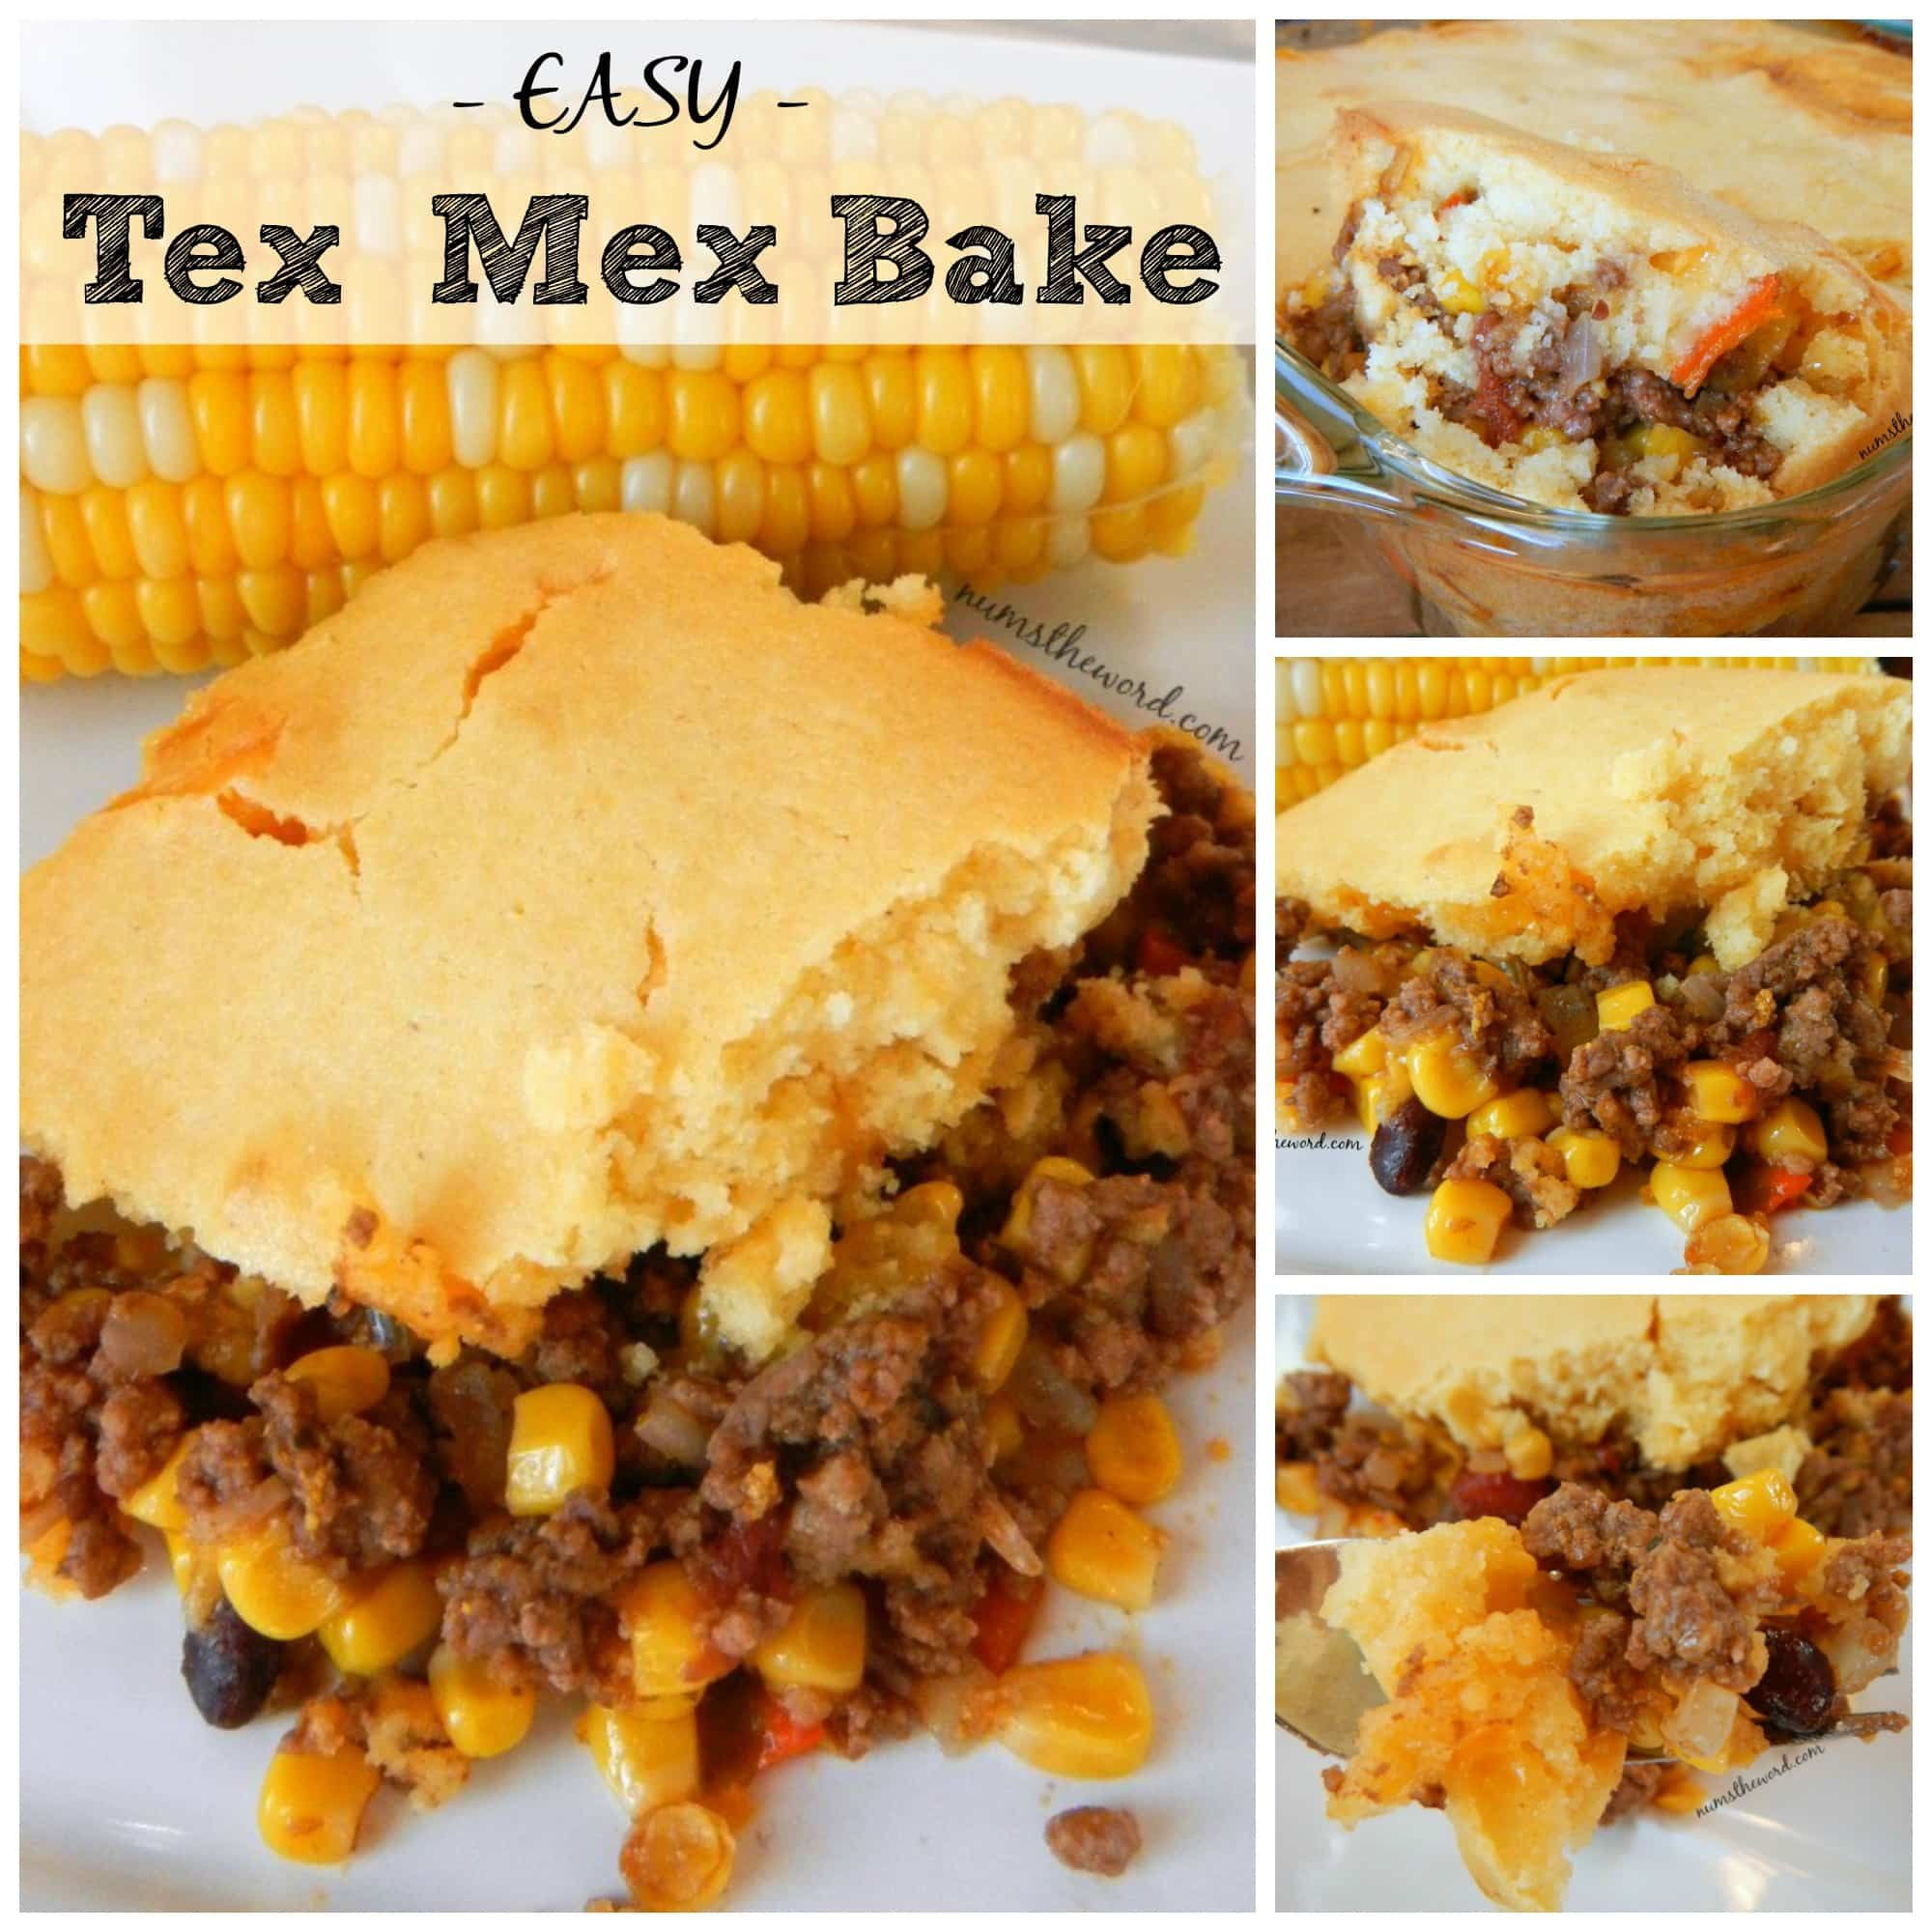 This Easy Tex Mex Bake Has Turned Into A Favorite Meal